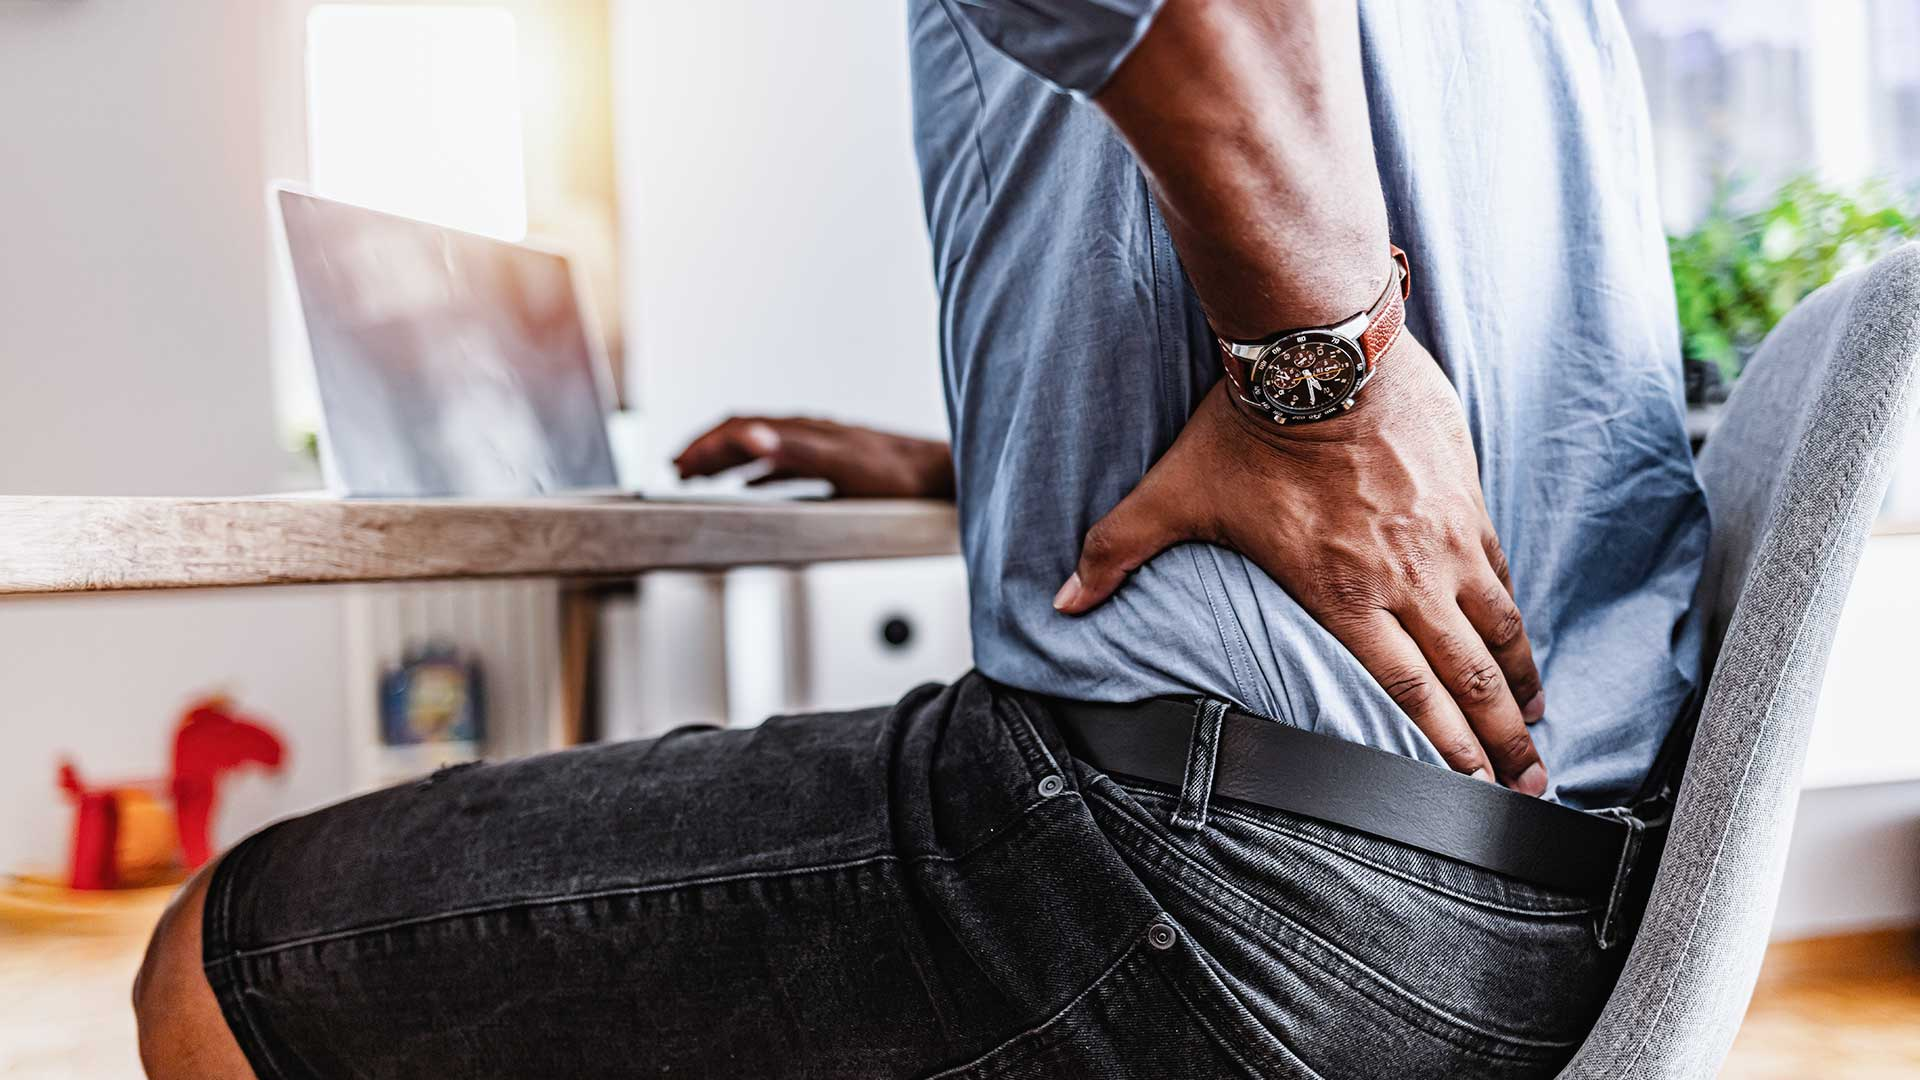 Why Men Are More at Risk for Kidney Stones